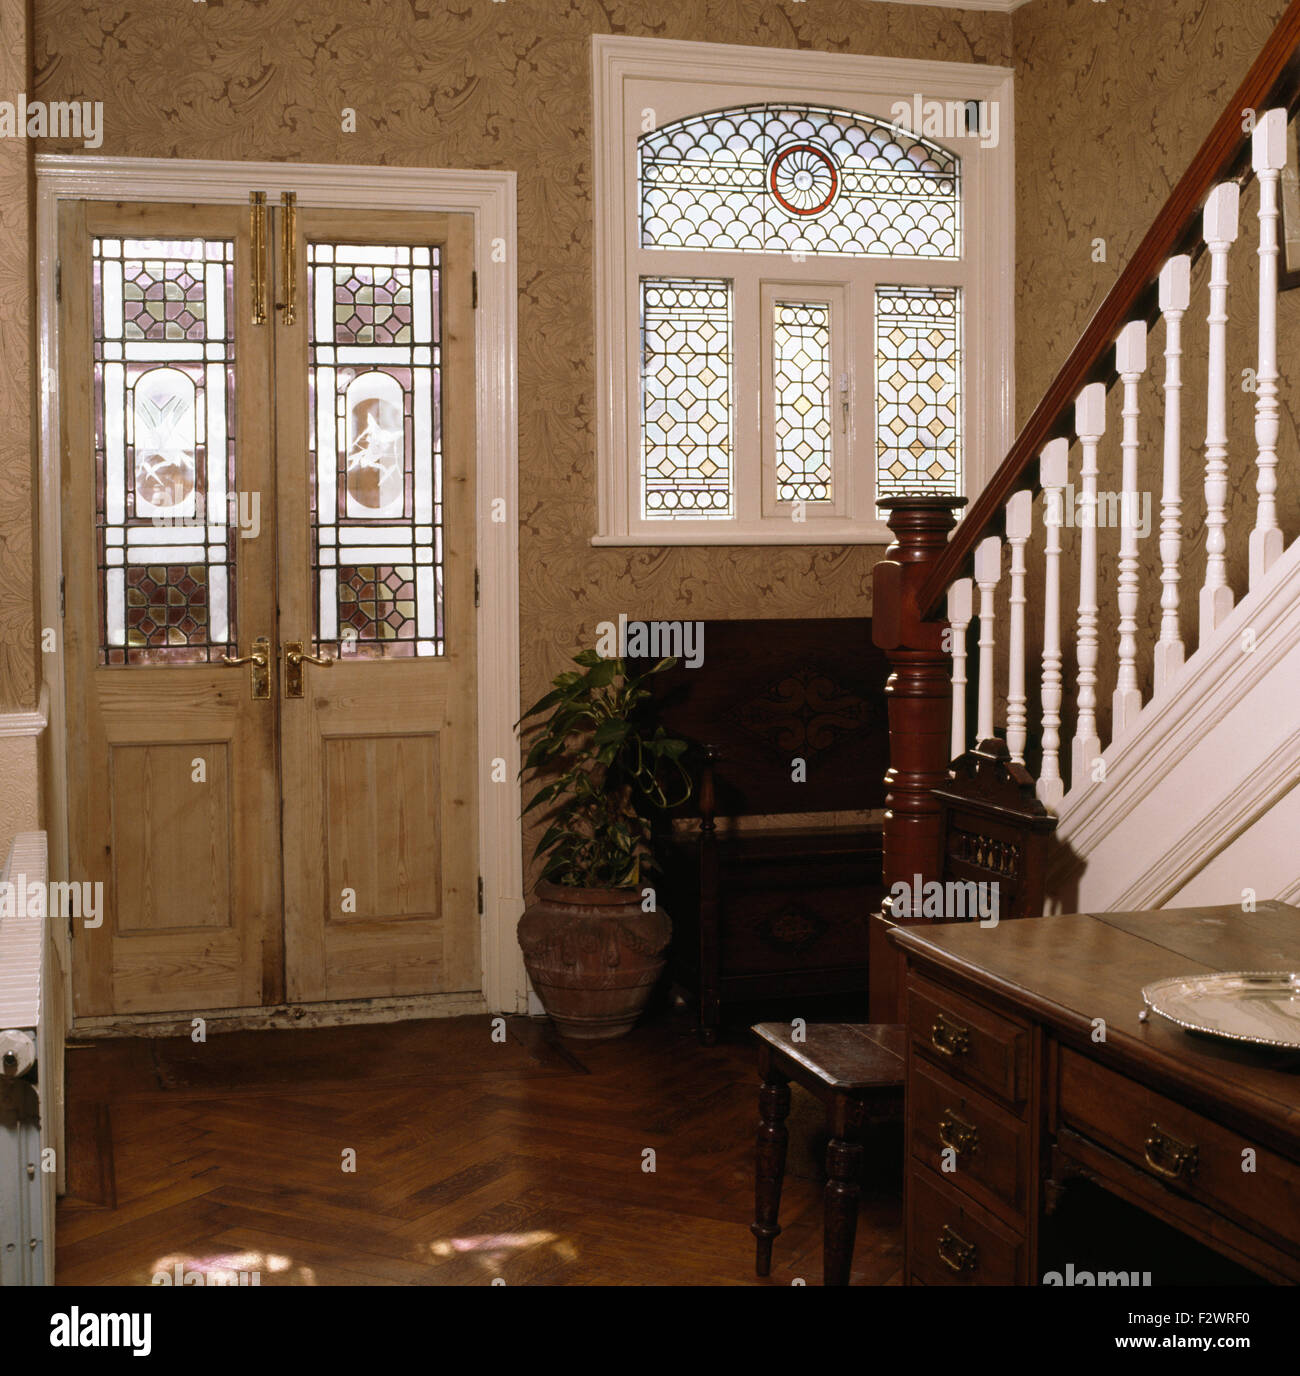 Stained Glass Panels In Door And Window Victorian Style Hall